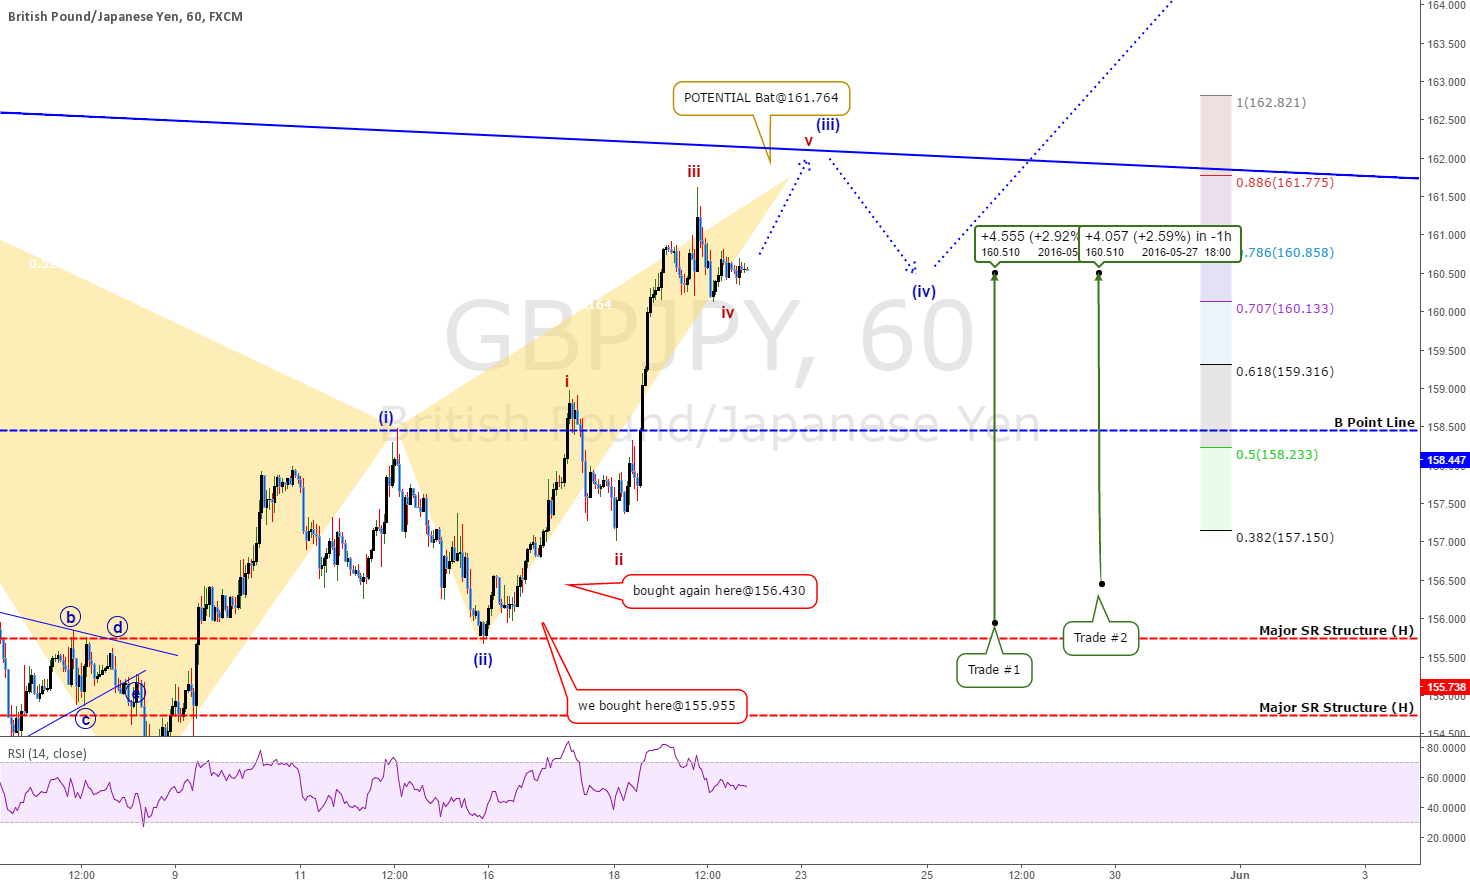 GBPJPY Trades Update: +860 pips On 2 Trades. SUPERTREND Coming?